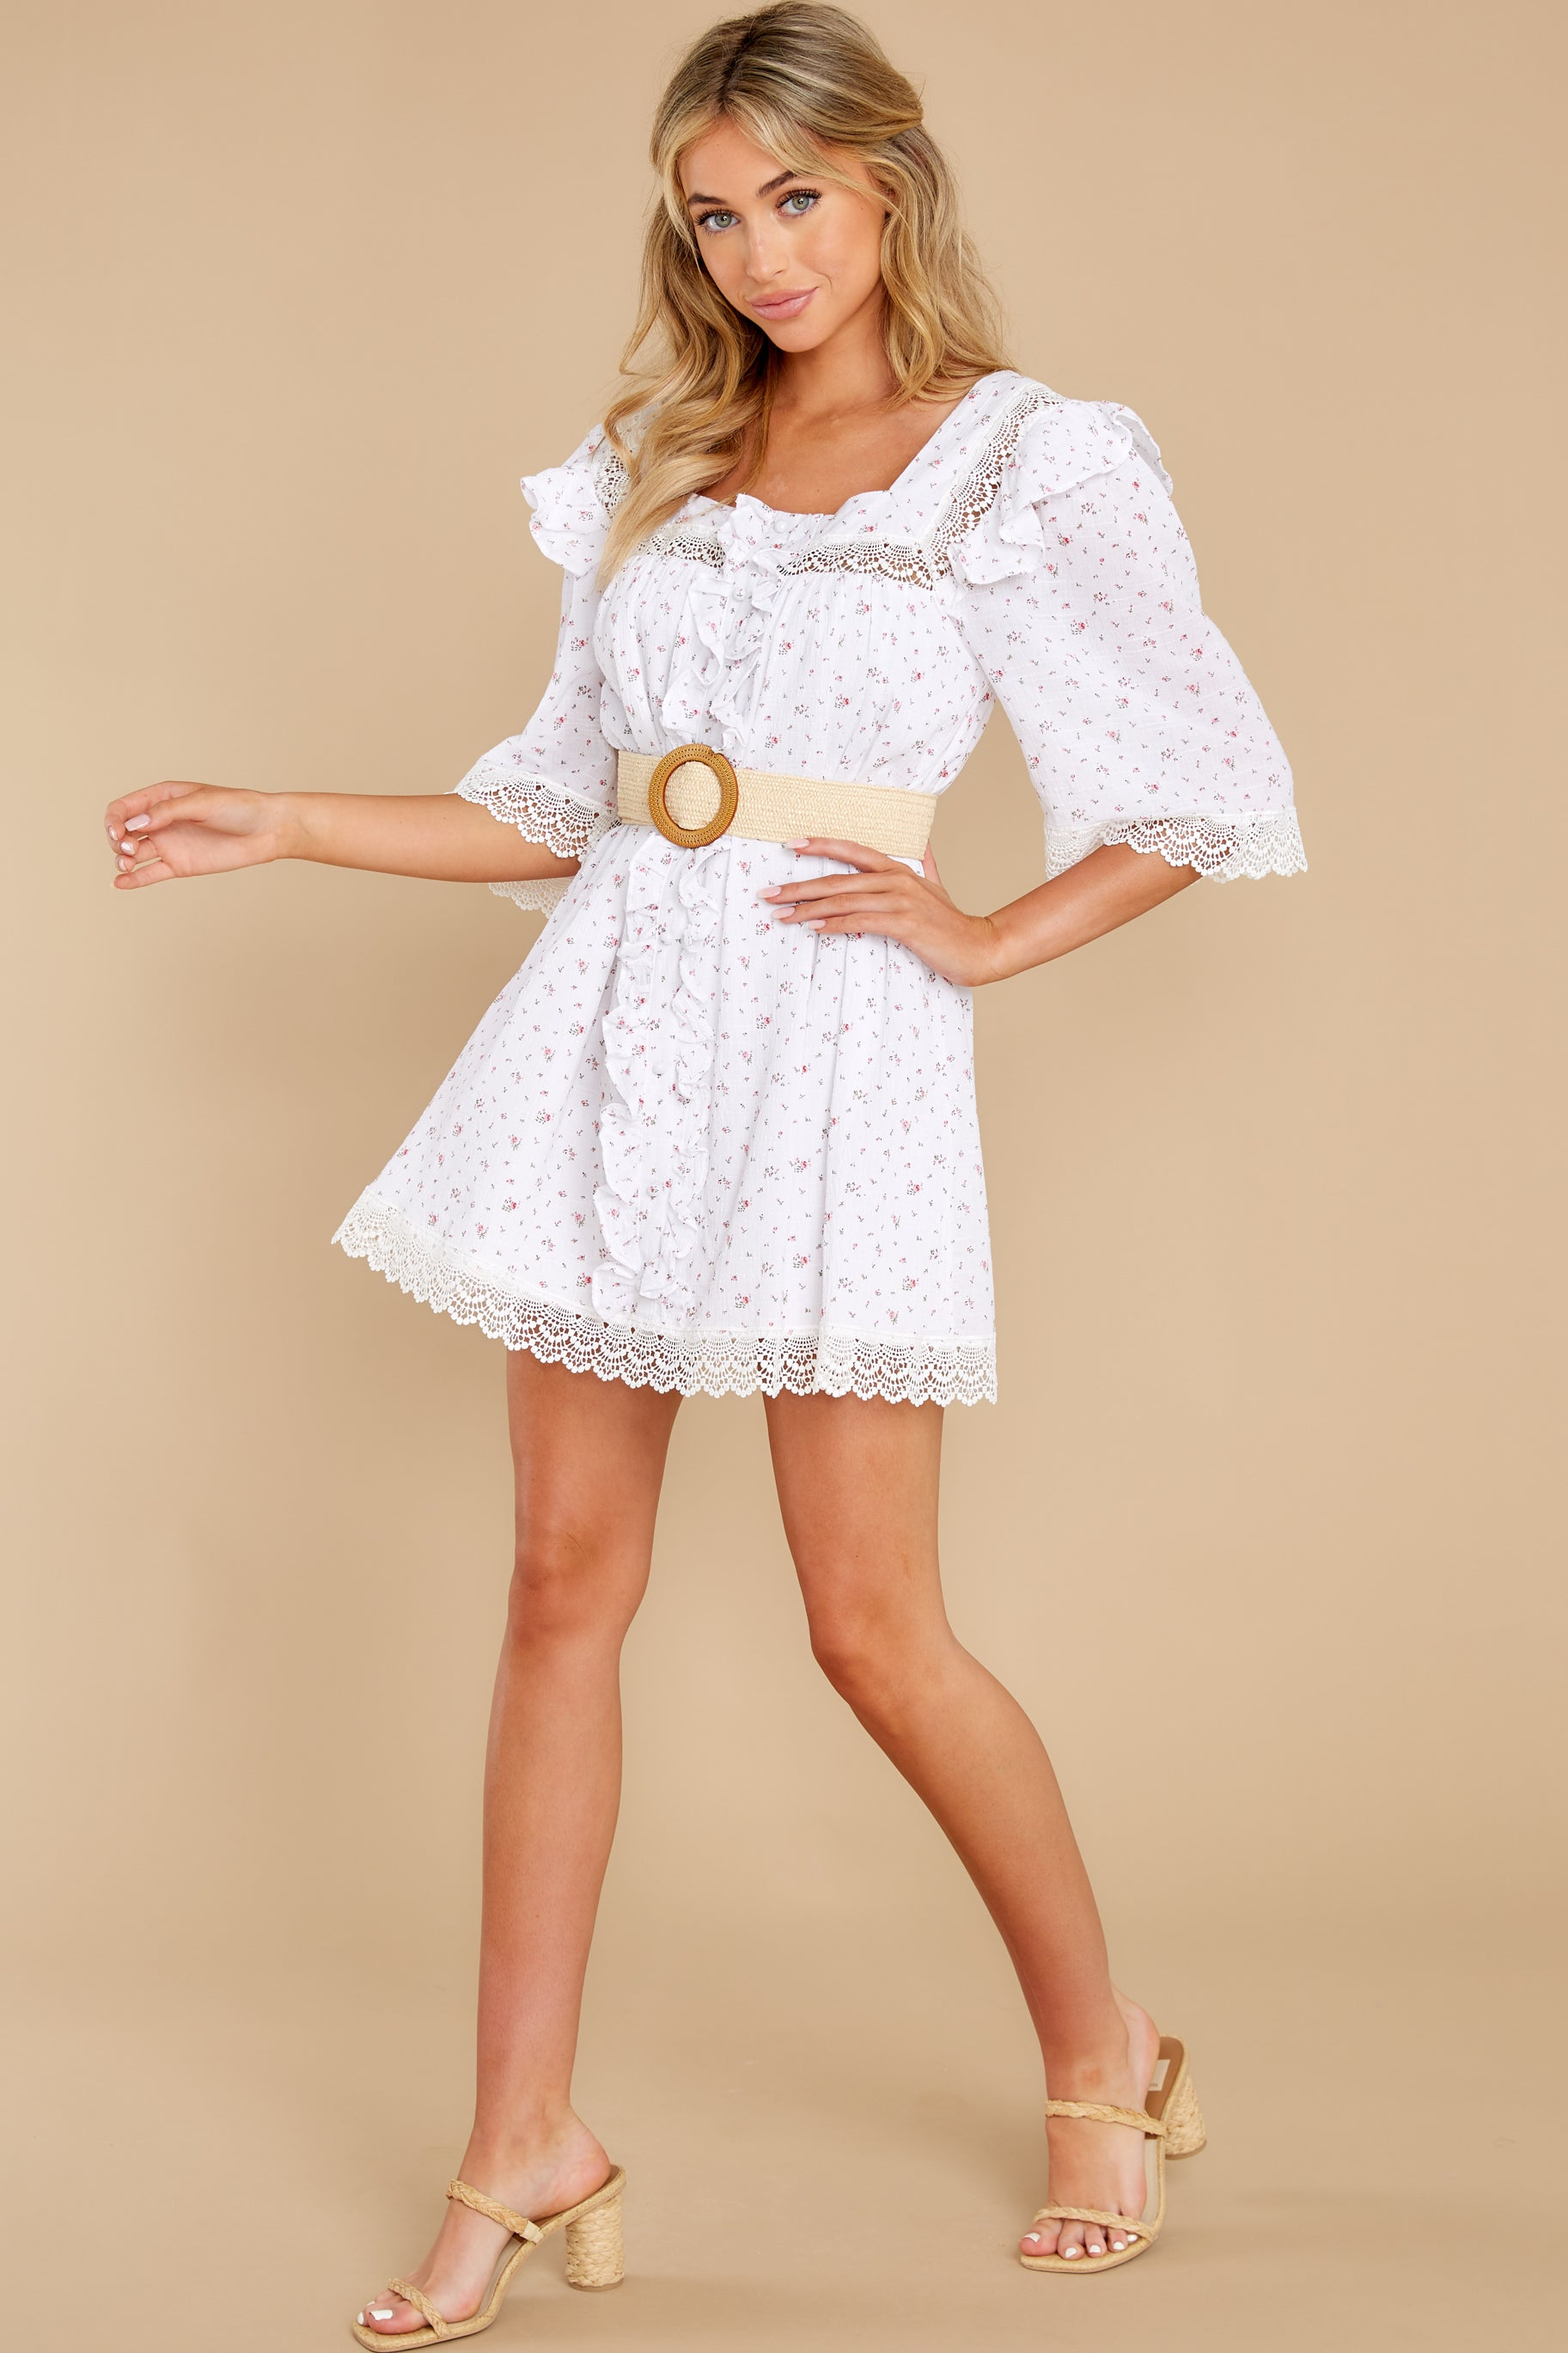 3 A Good Romance White Print Dress at reddress.com